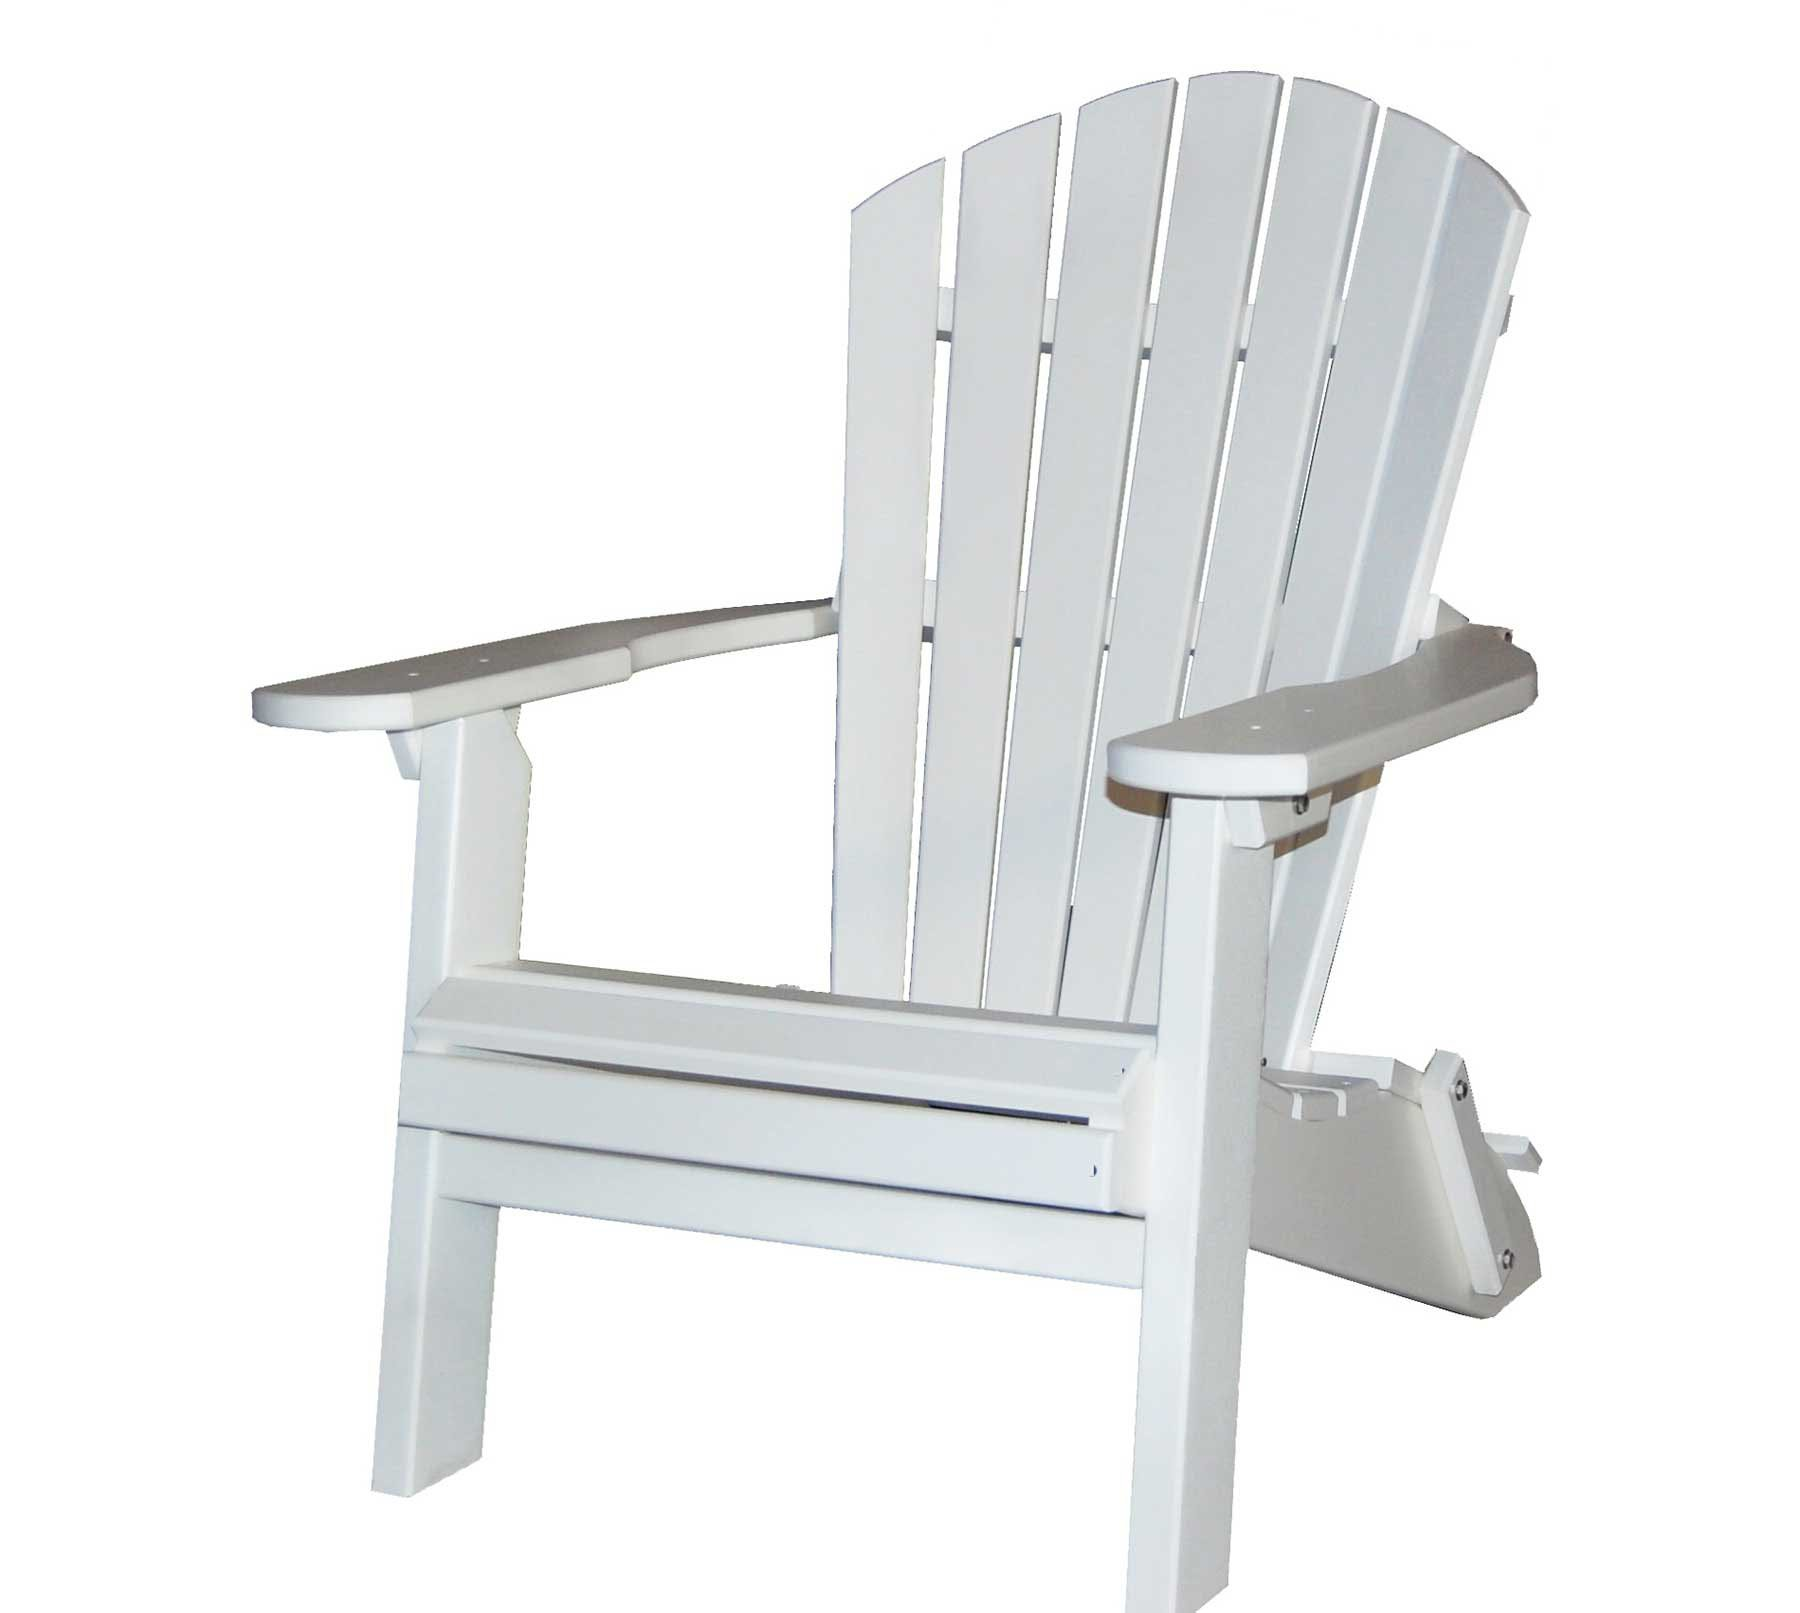 The Classic Adirondack Folding Chair From Signature Fine Furnishings